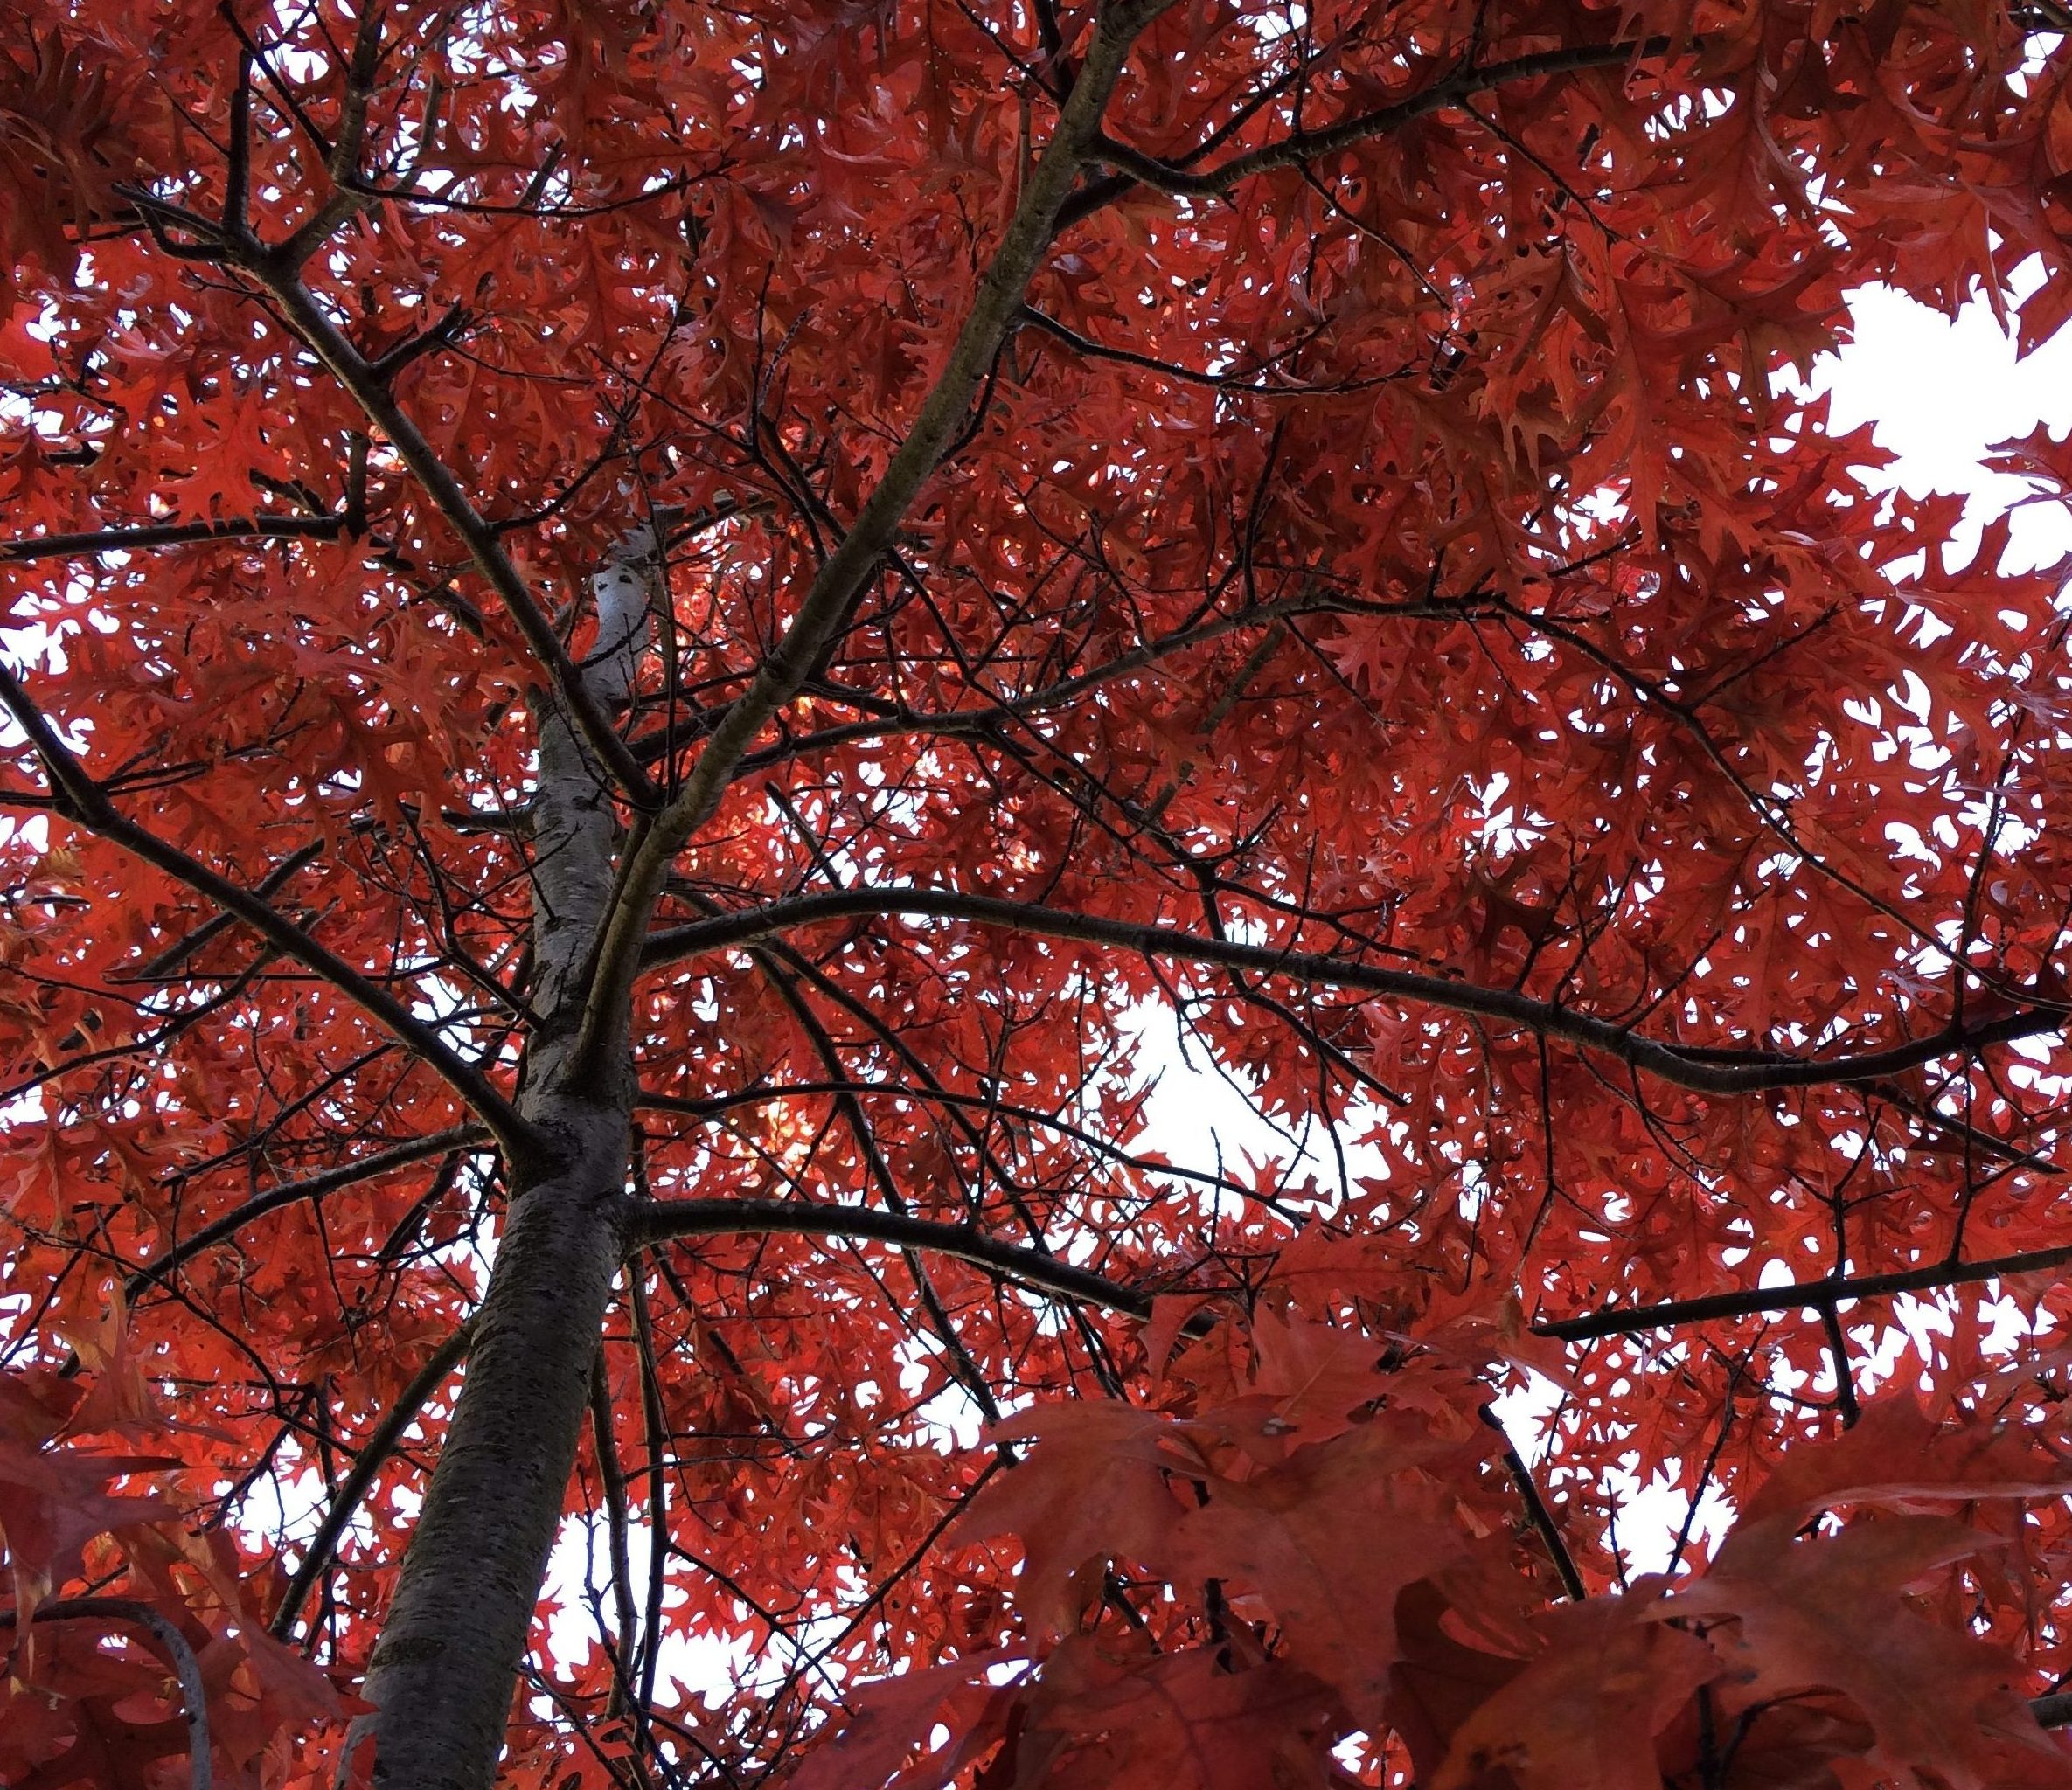 red maple leaves on a tree, from below